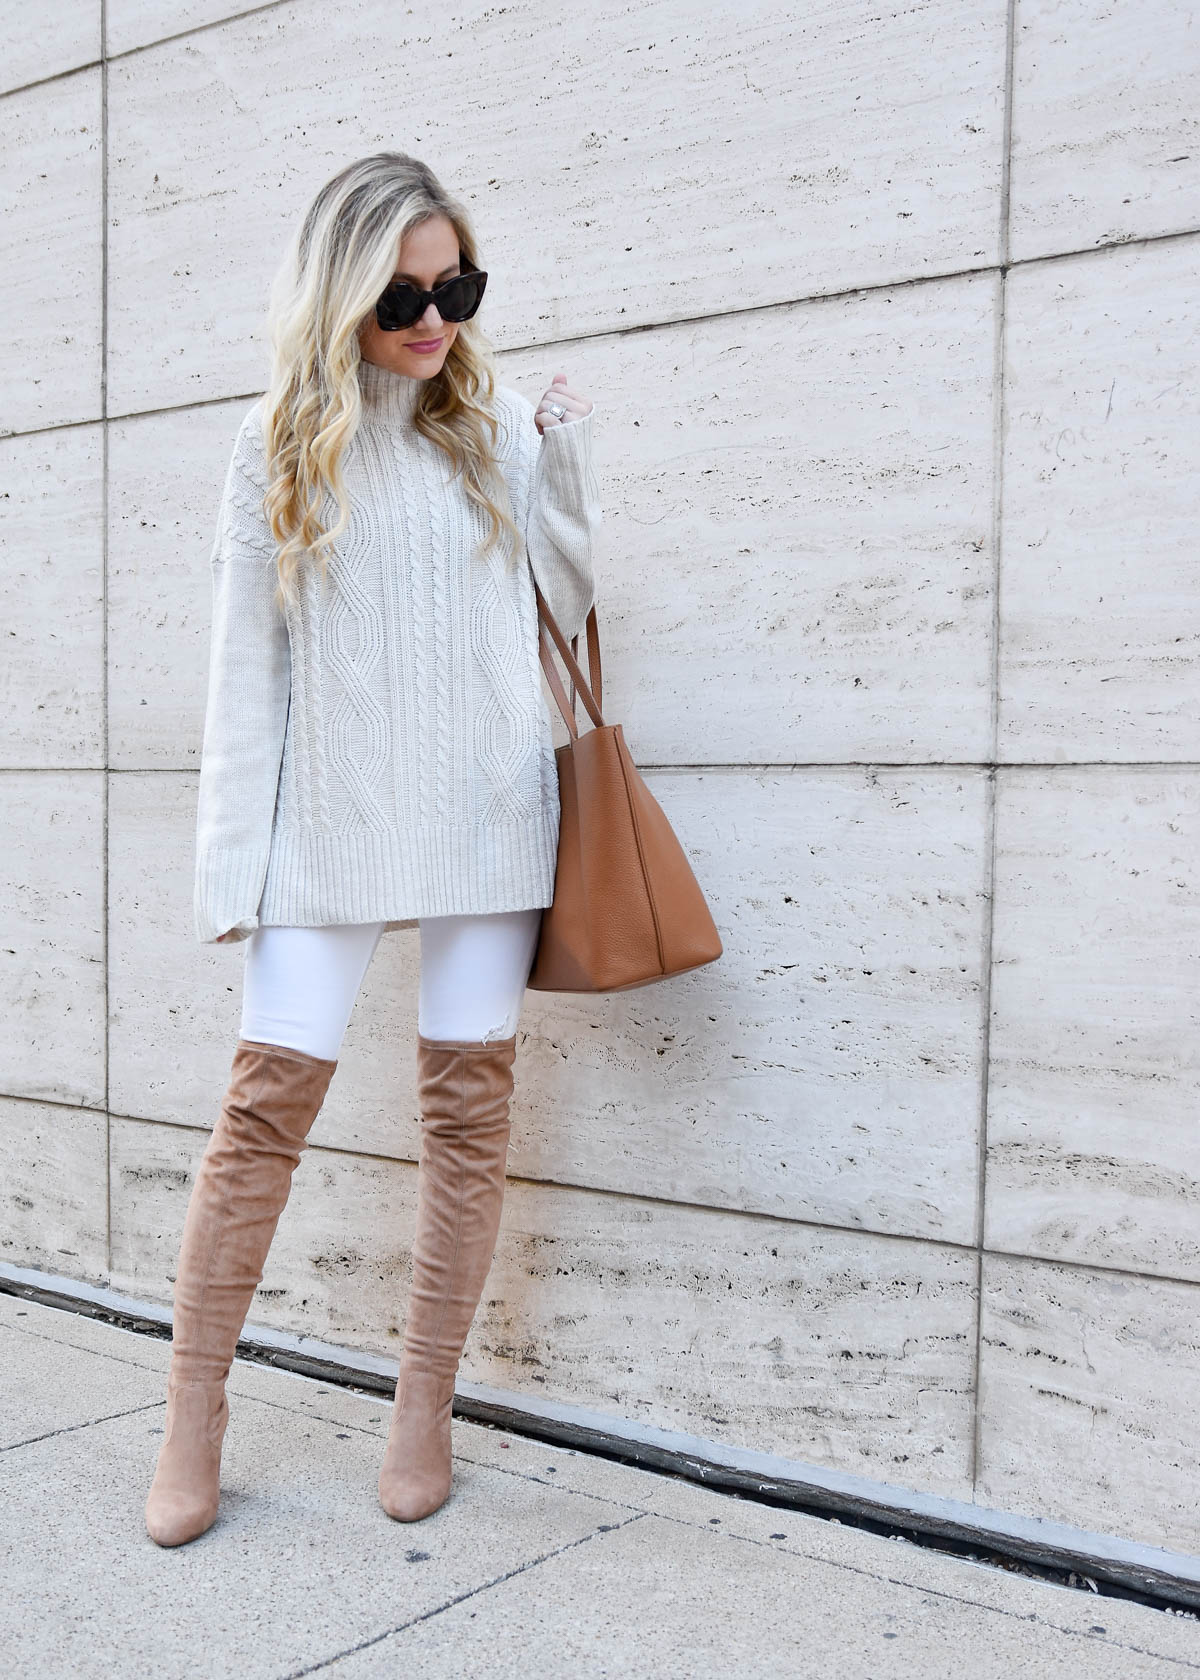 White-Cable-Knit-Sweater, White-Jeans